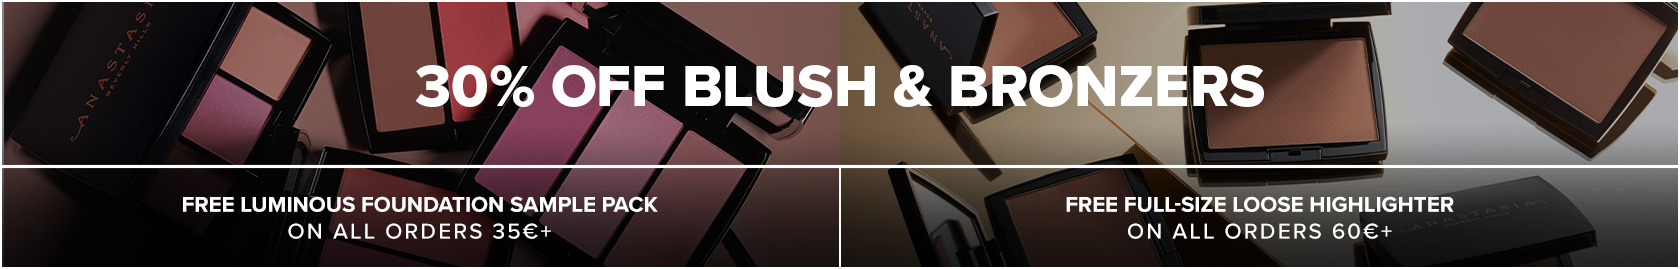 30% off Blush and Bronzer, Free Foundation Sample with 35€ order, Free Full Sized Loose Highlighter with 60€ order